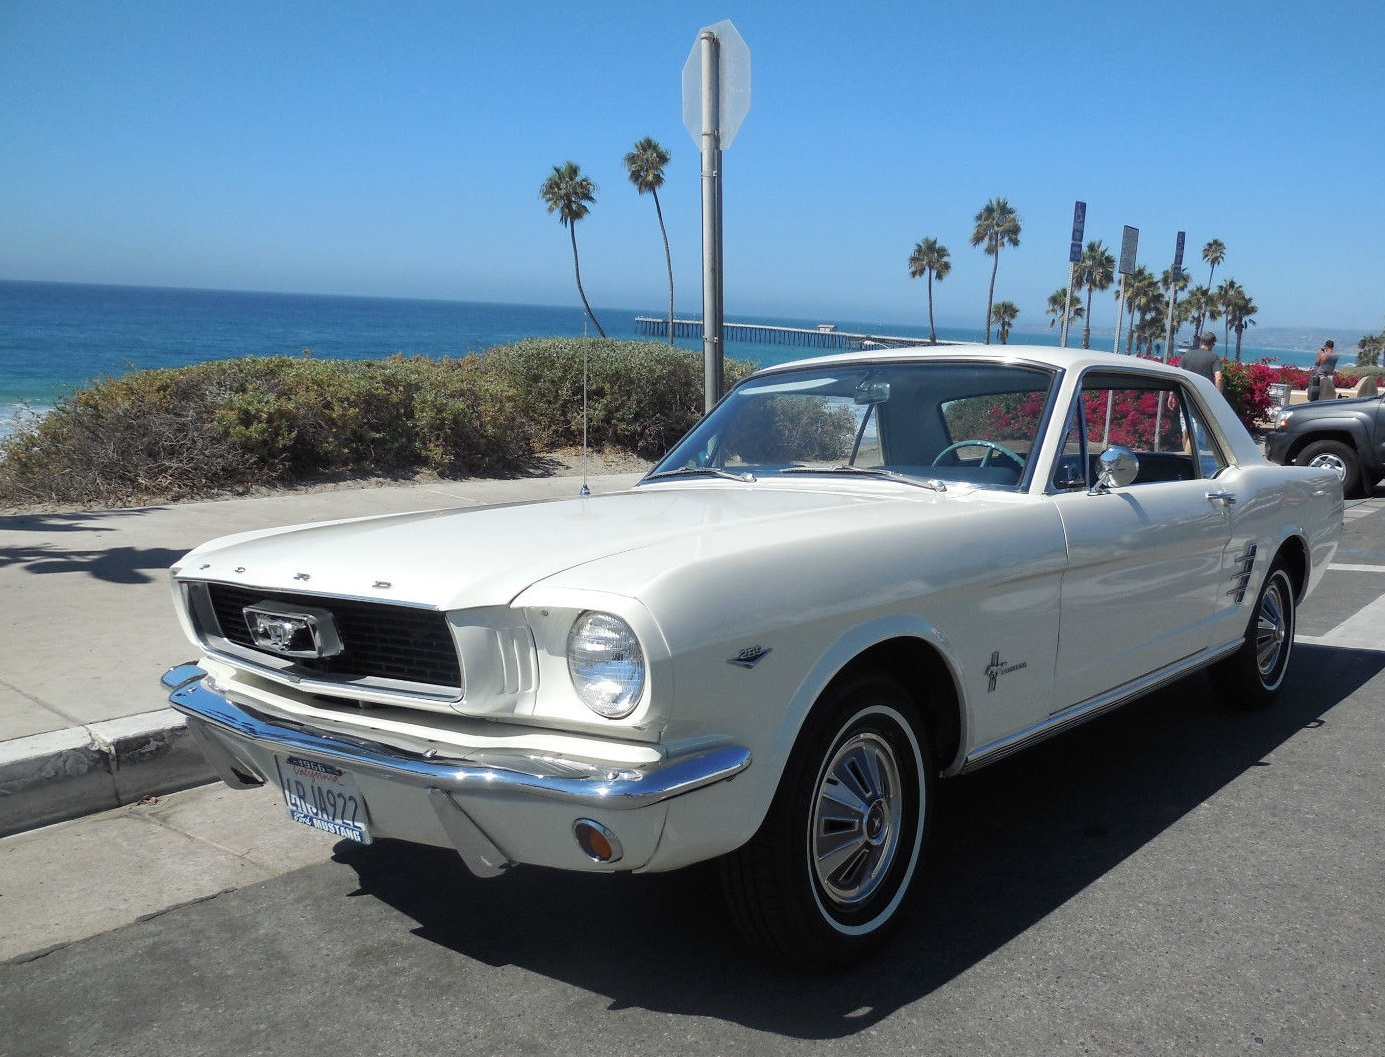 Ford mustang coupe 1966 classic car malibu mart - Ford mustang vintage ...